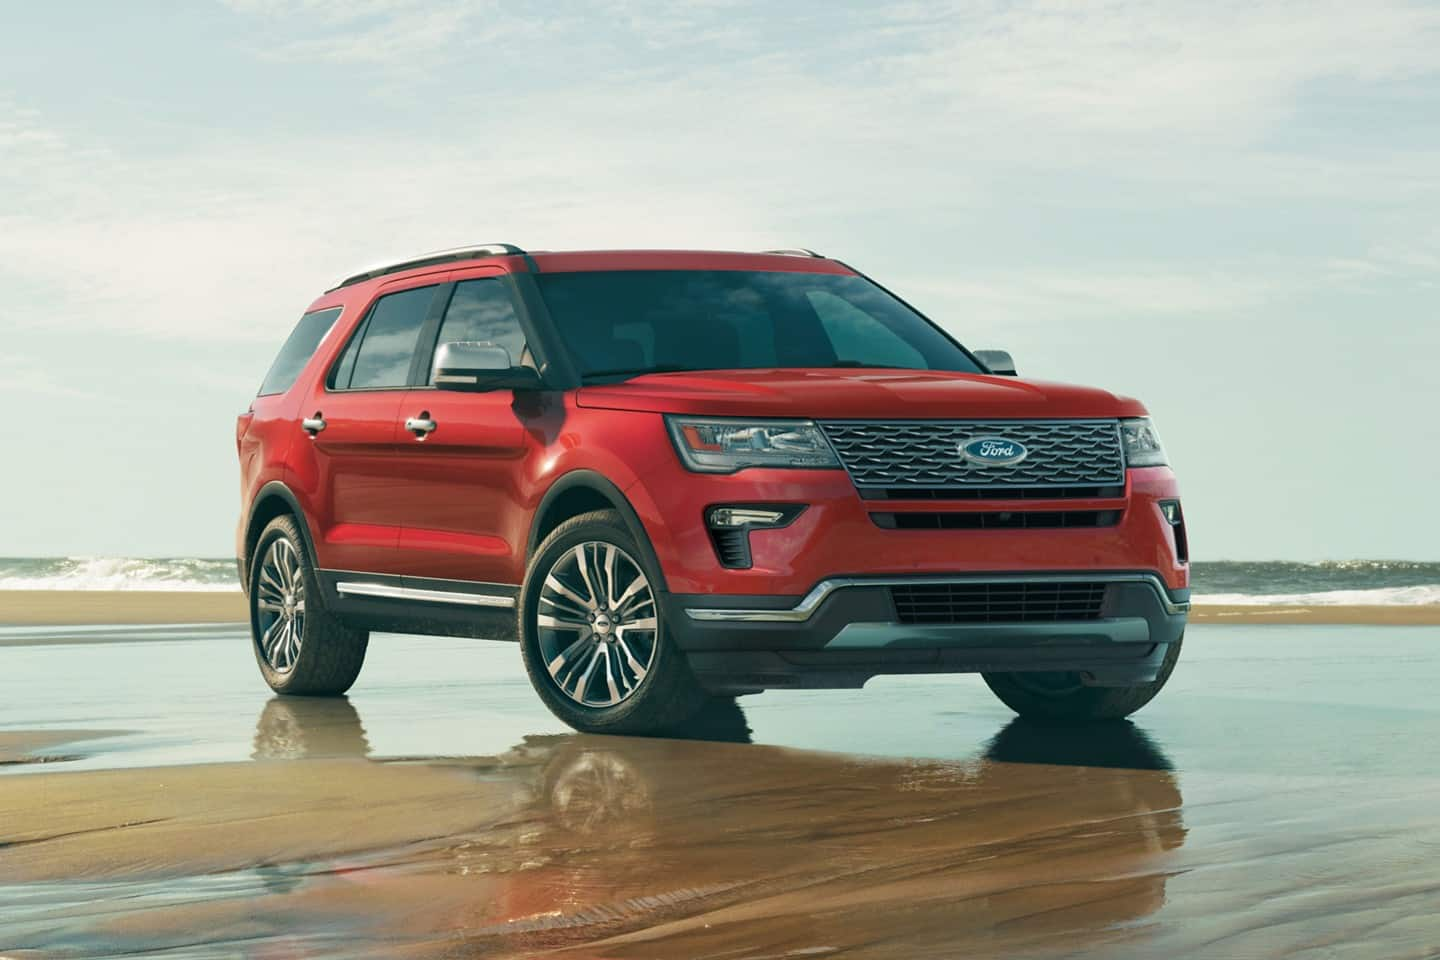 25 All New 2019 Ford Explorer Price Design And Review